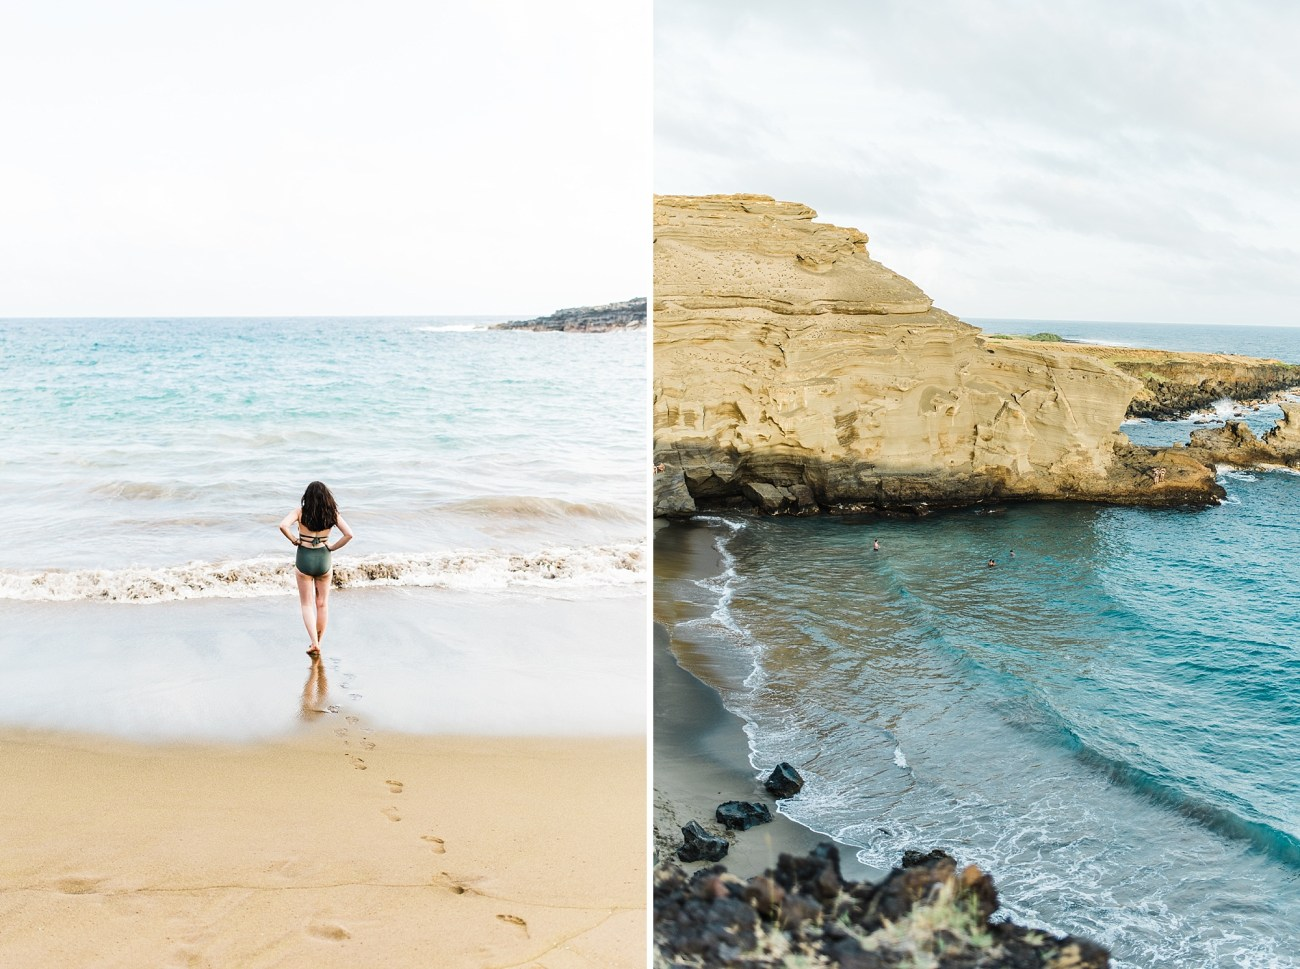 Collage of Photos of the Papakolea Green Sand Beach on the Big Island of Hawaii